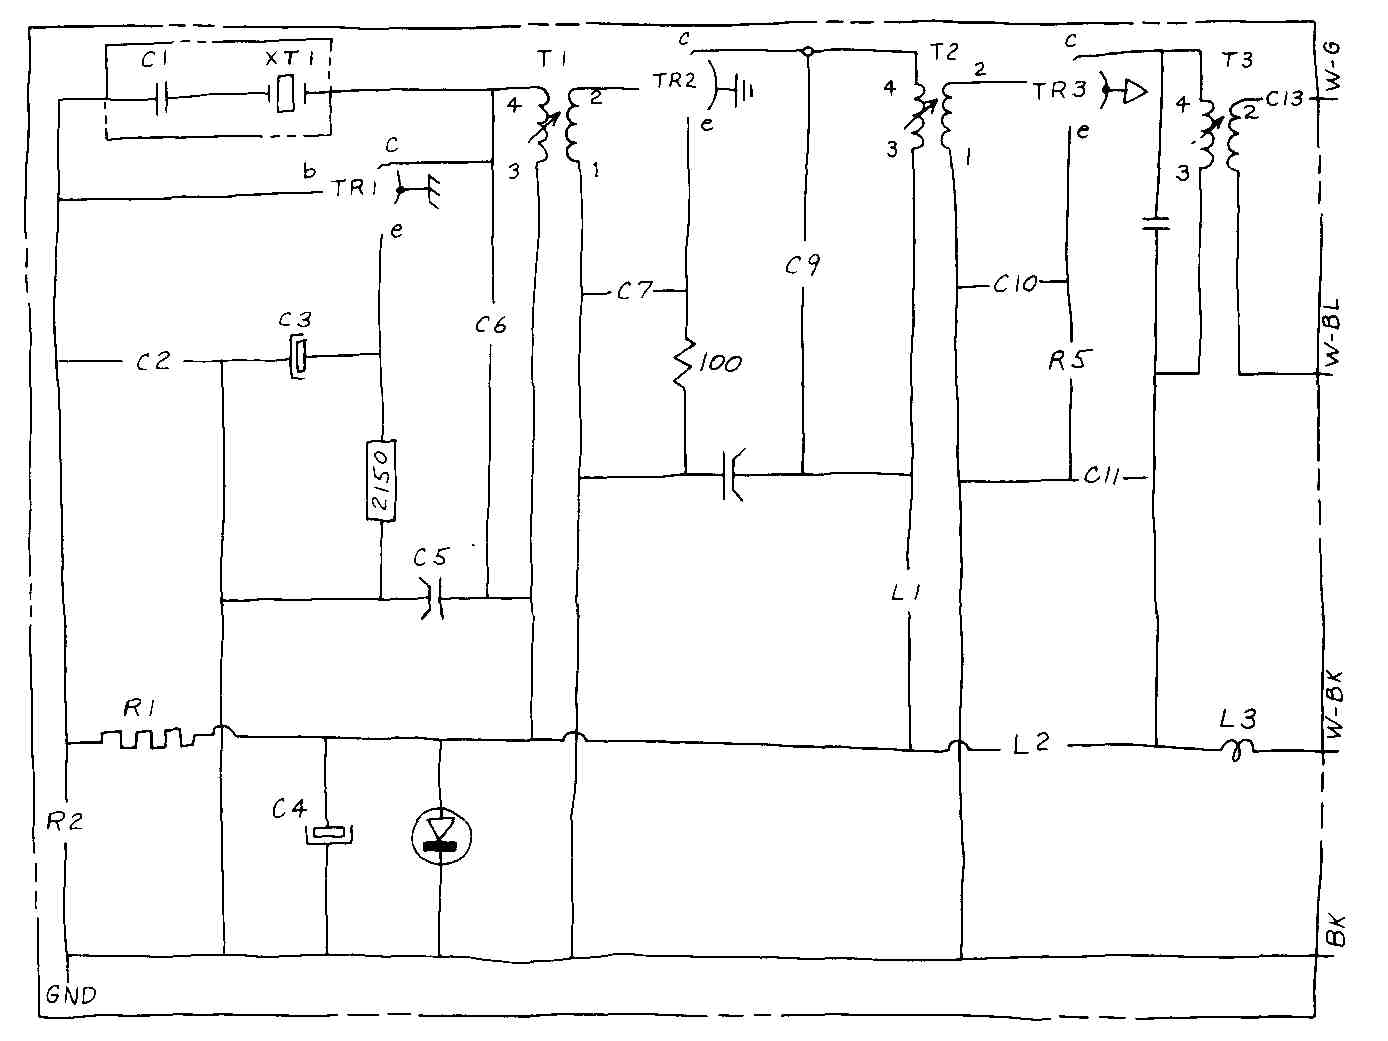 Electrical And Electronic Schematic Diagrams Part 2 Preamplifier Circuit Diagram